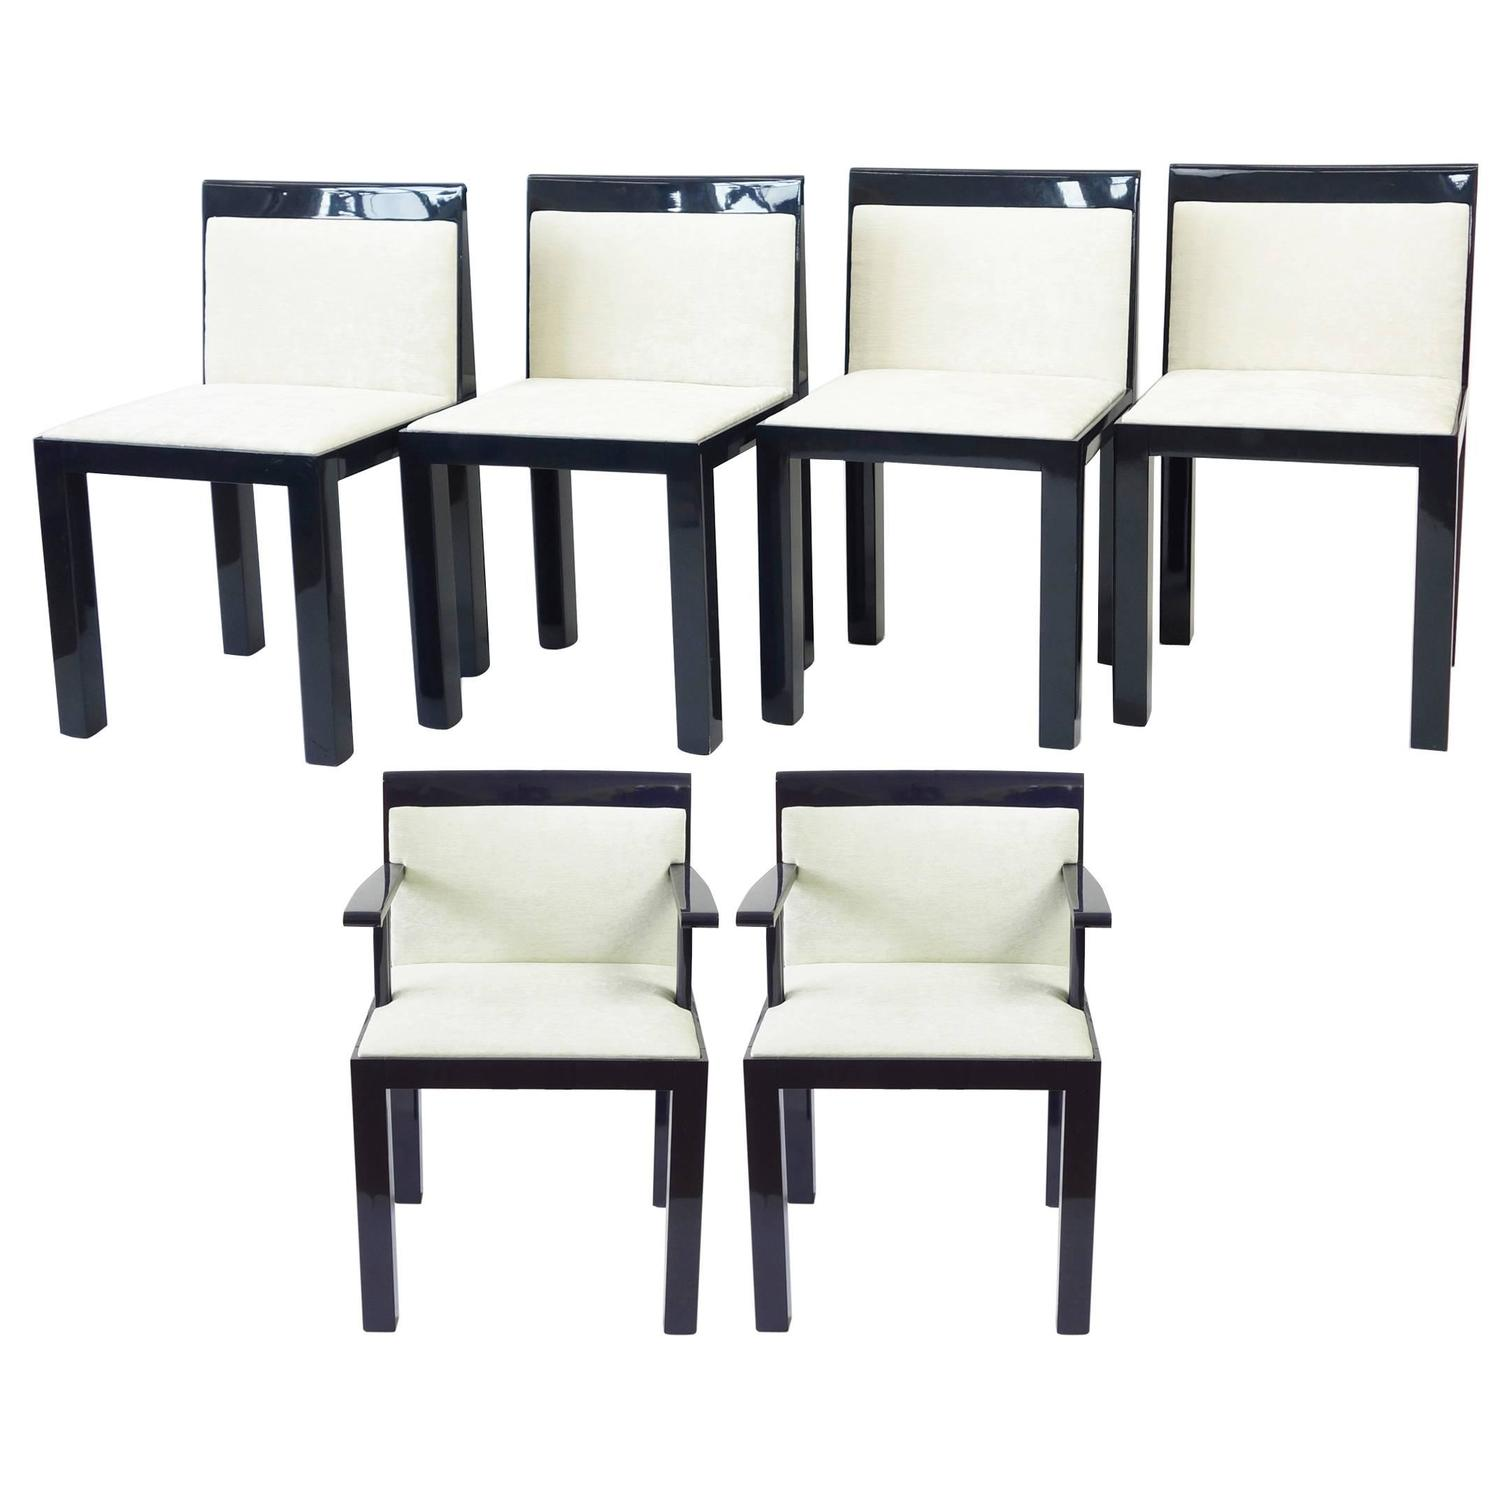 Six Teatro Chairs by Aldo Rossi and Luca Meda at 1stdibs